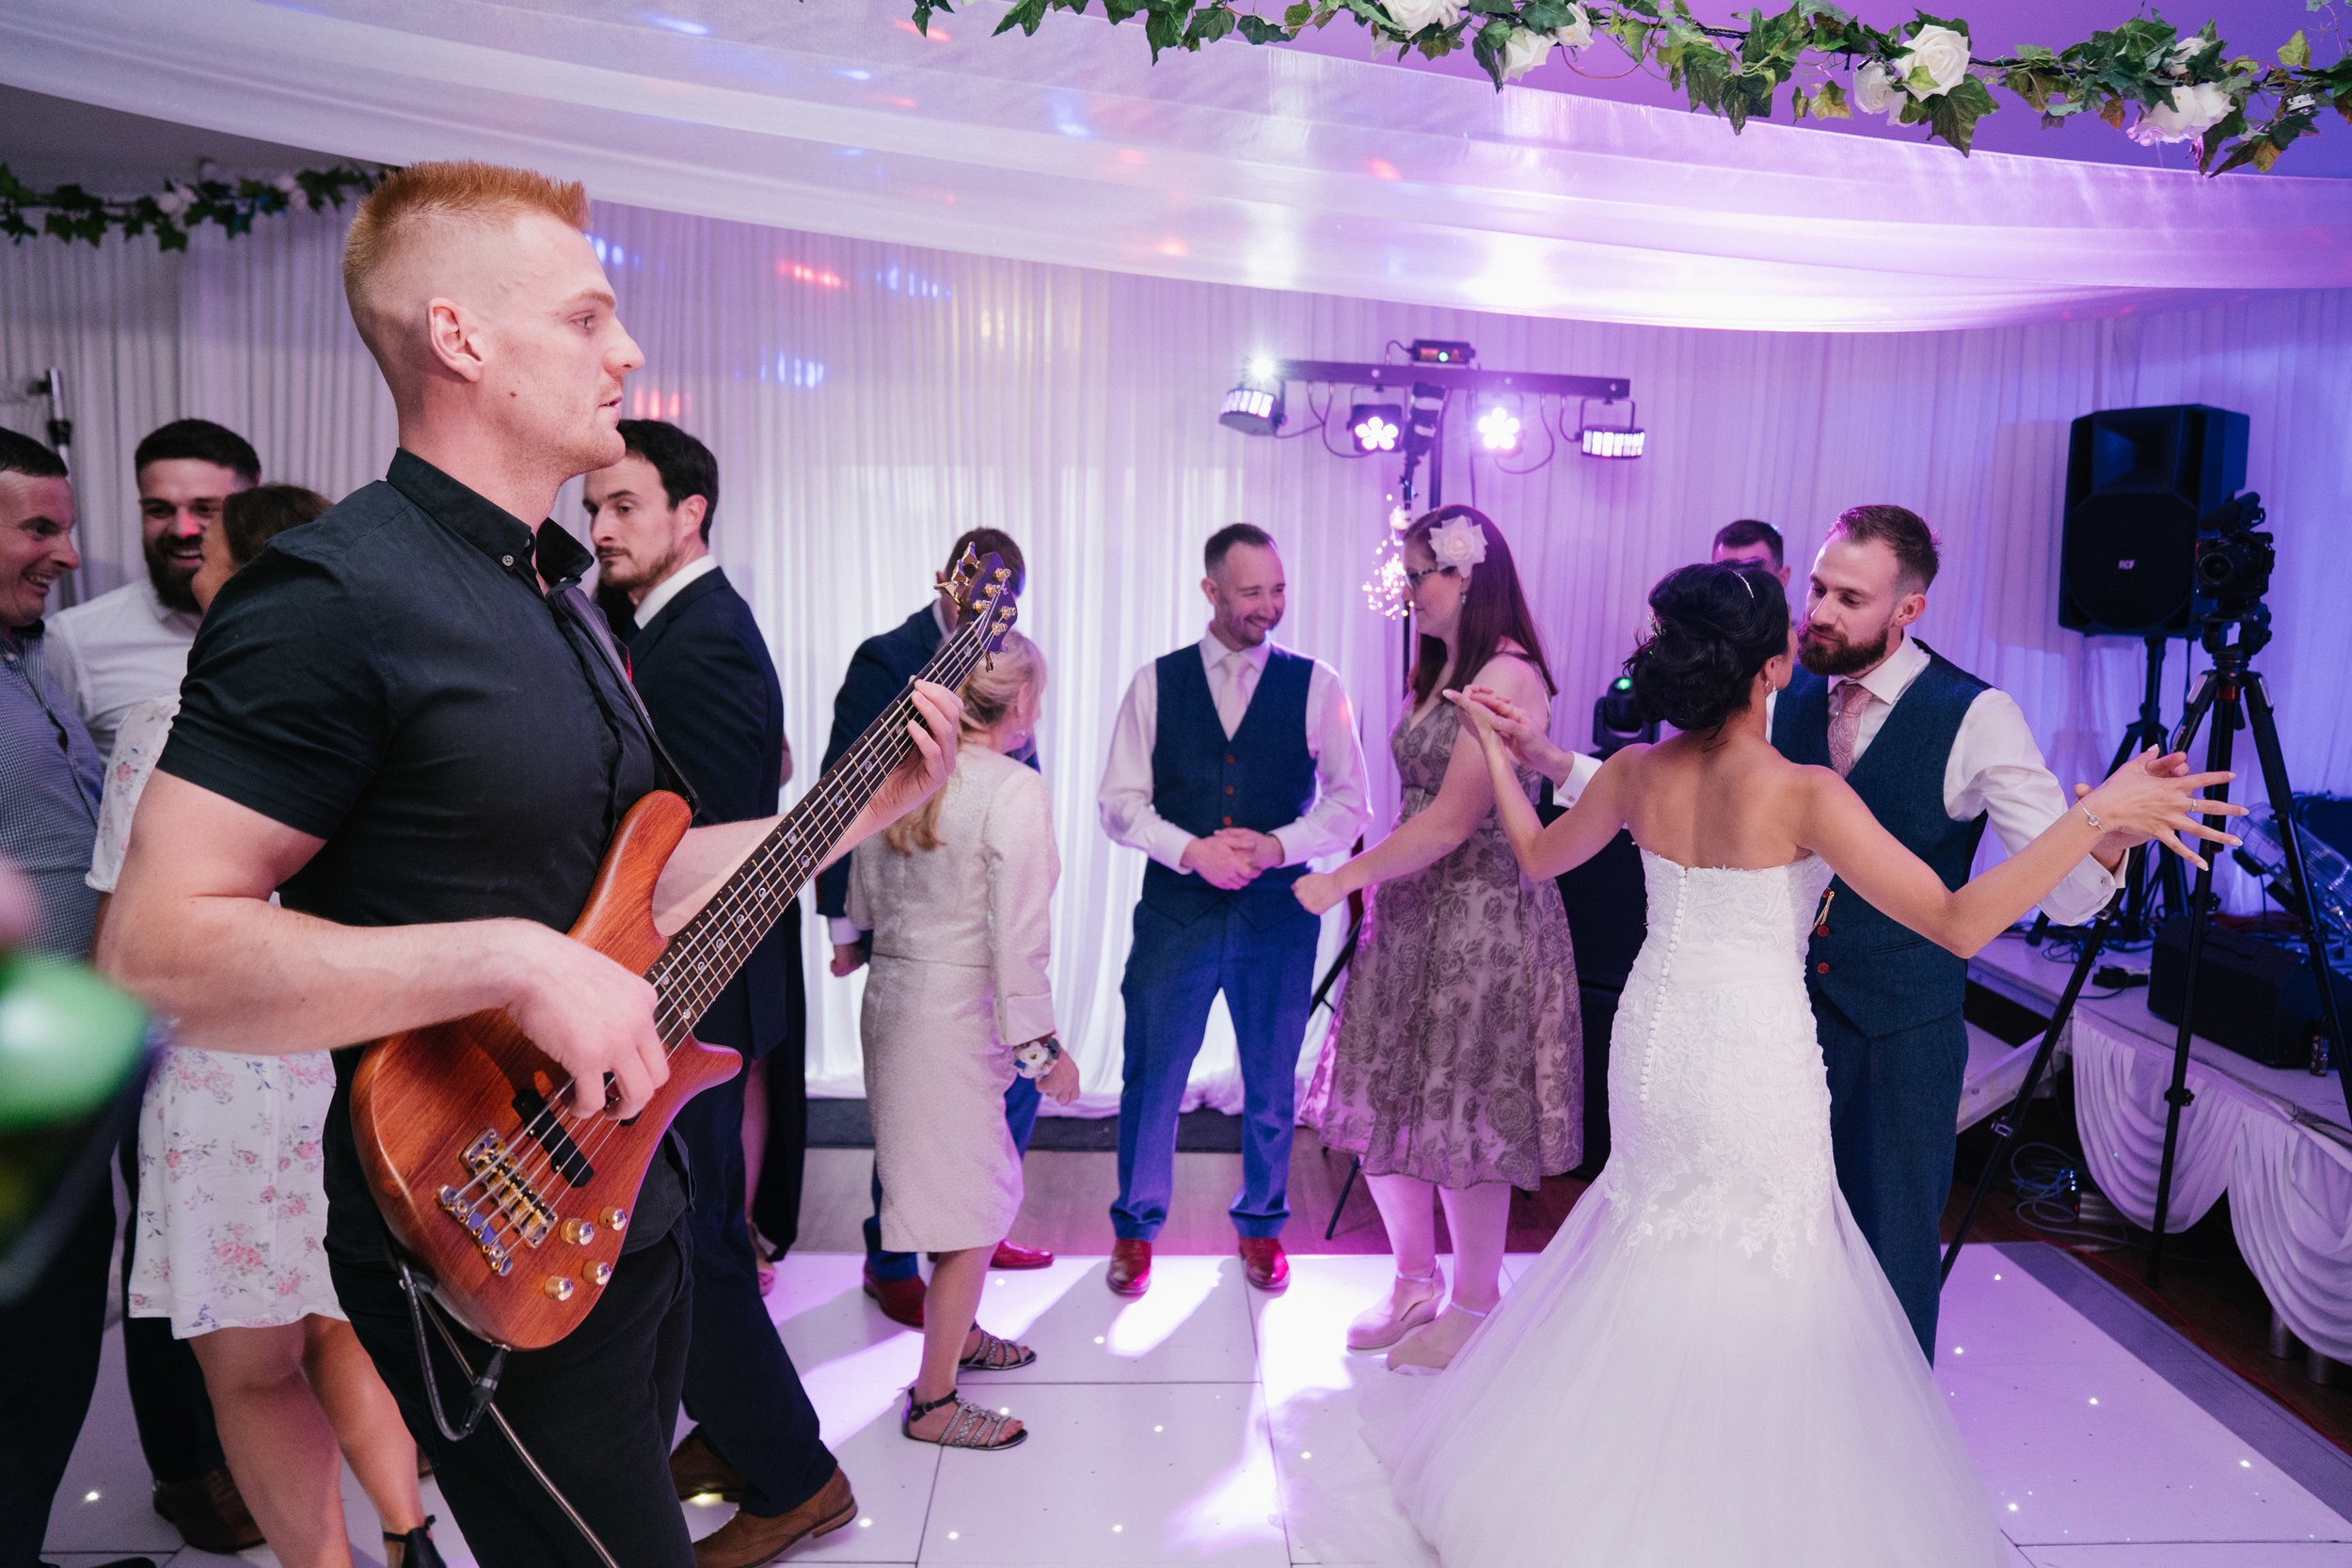 bedfordshire-london-wedding-photographer-videographer-72